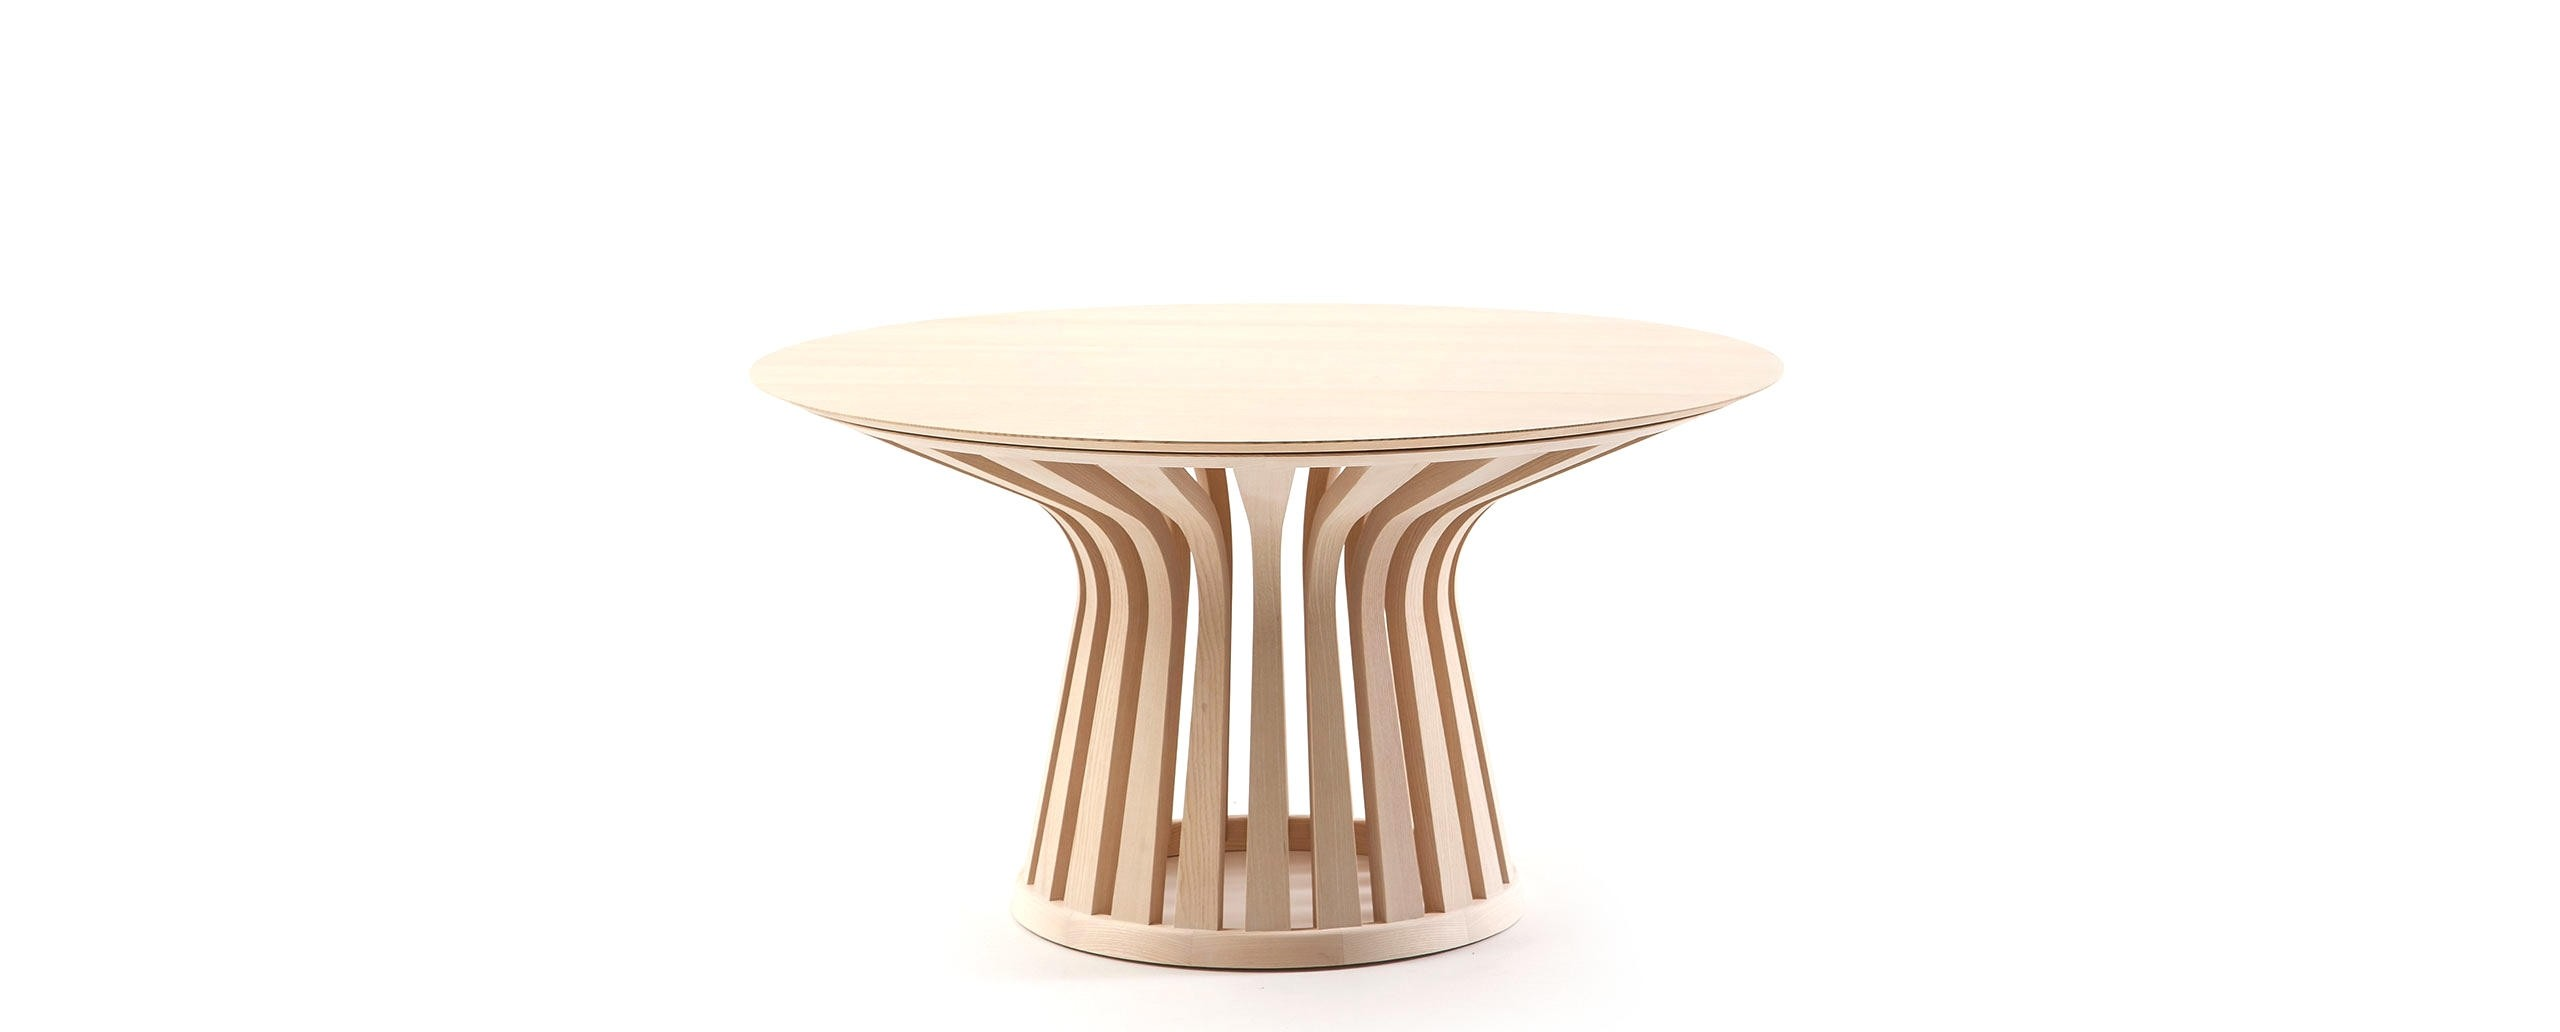 Cassinia Lebeau Wood Table Patrick Jouin